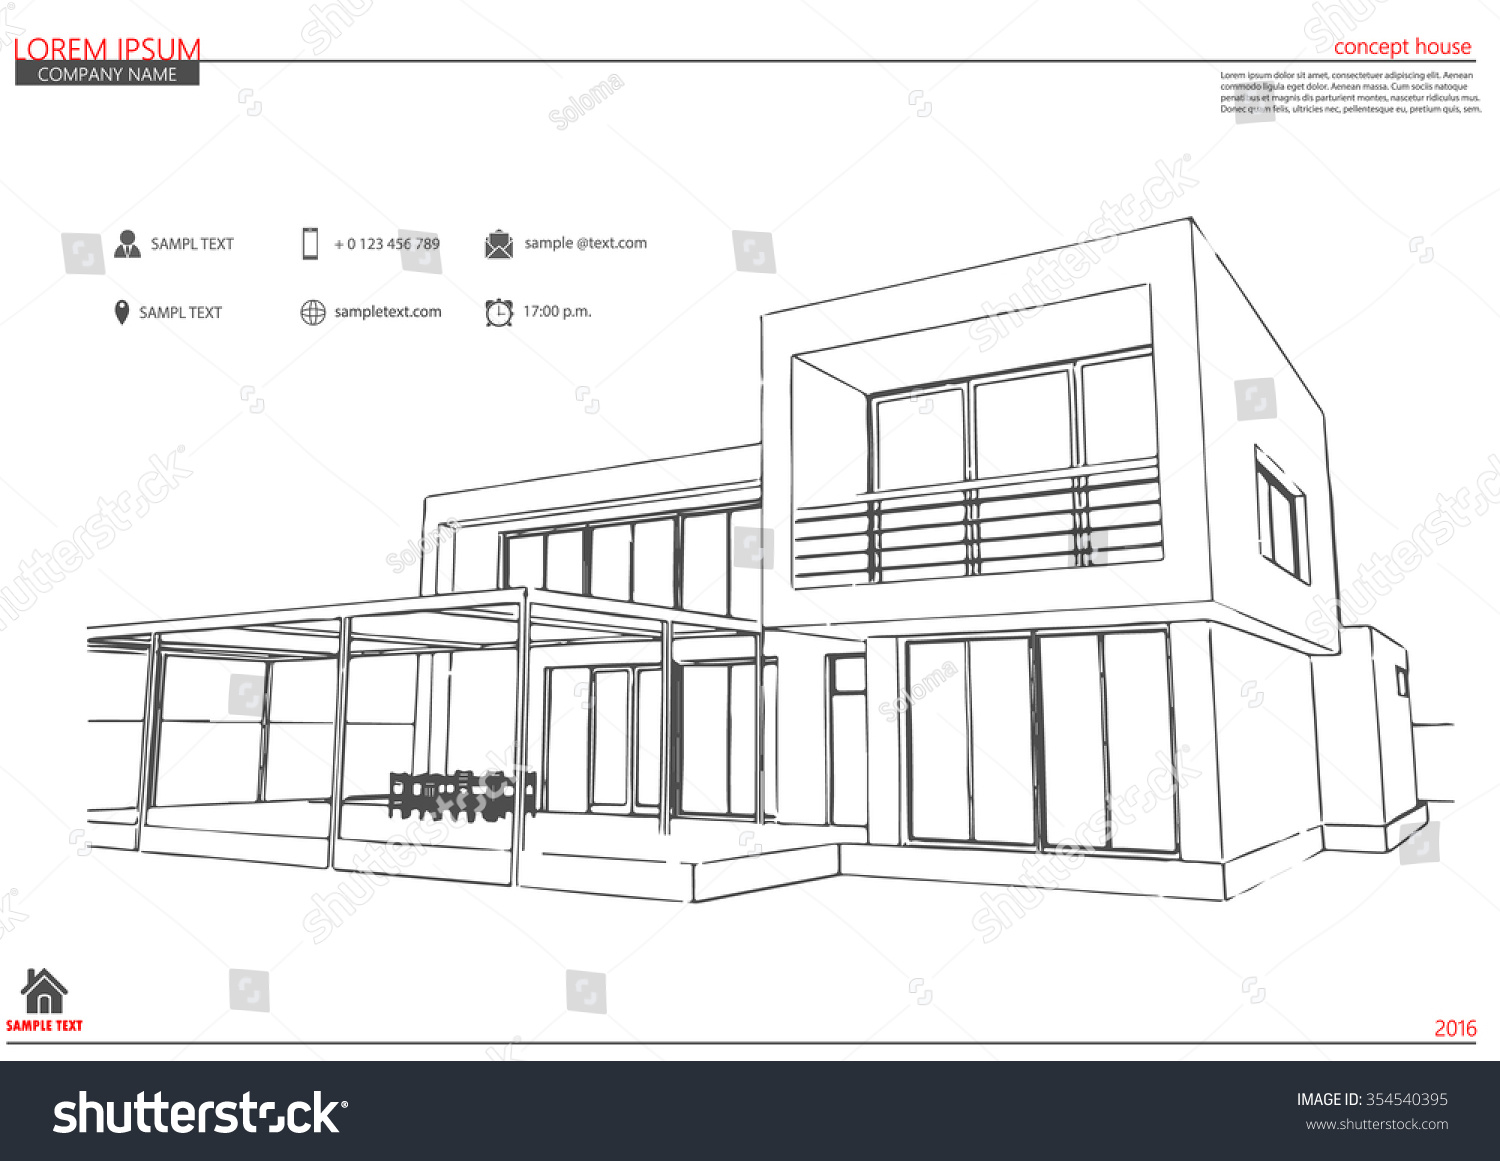 Wireframe blueprint drawing 3d building vector vectores en stock wireframe blueprint drawing of 3d building vector architectural template background architectural drawing architectural malvernweather